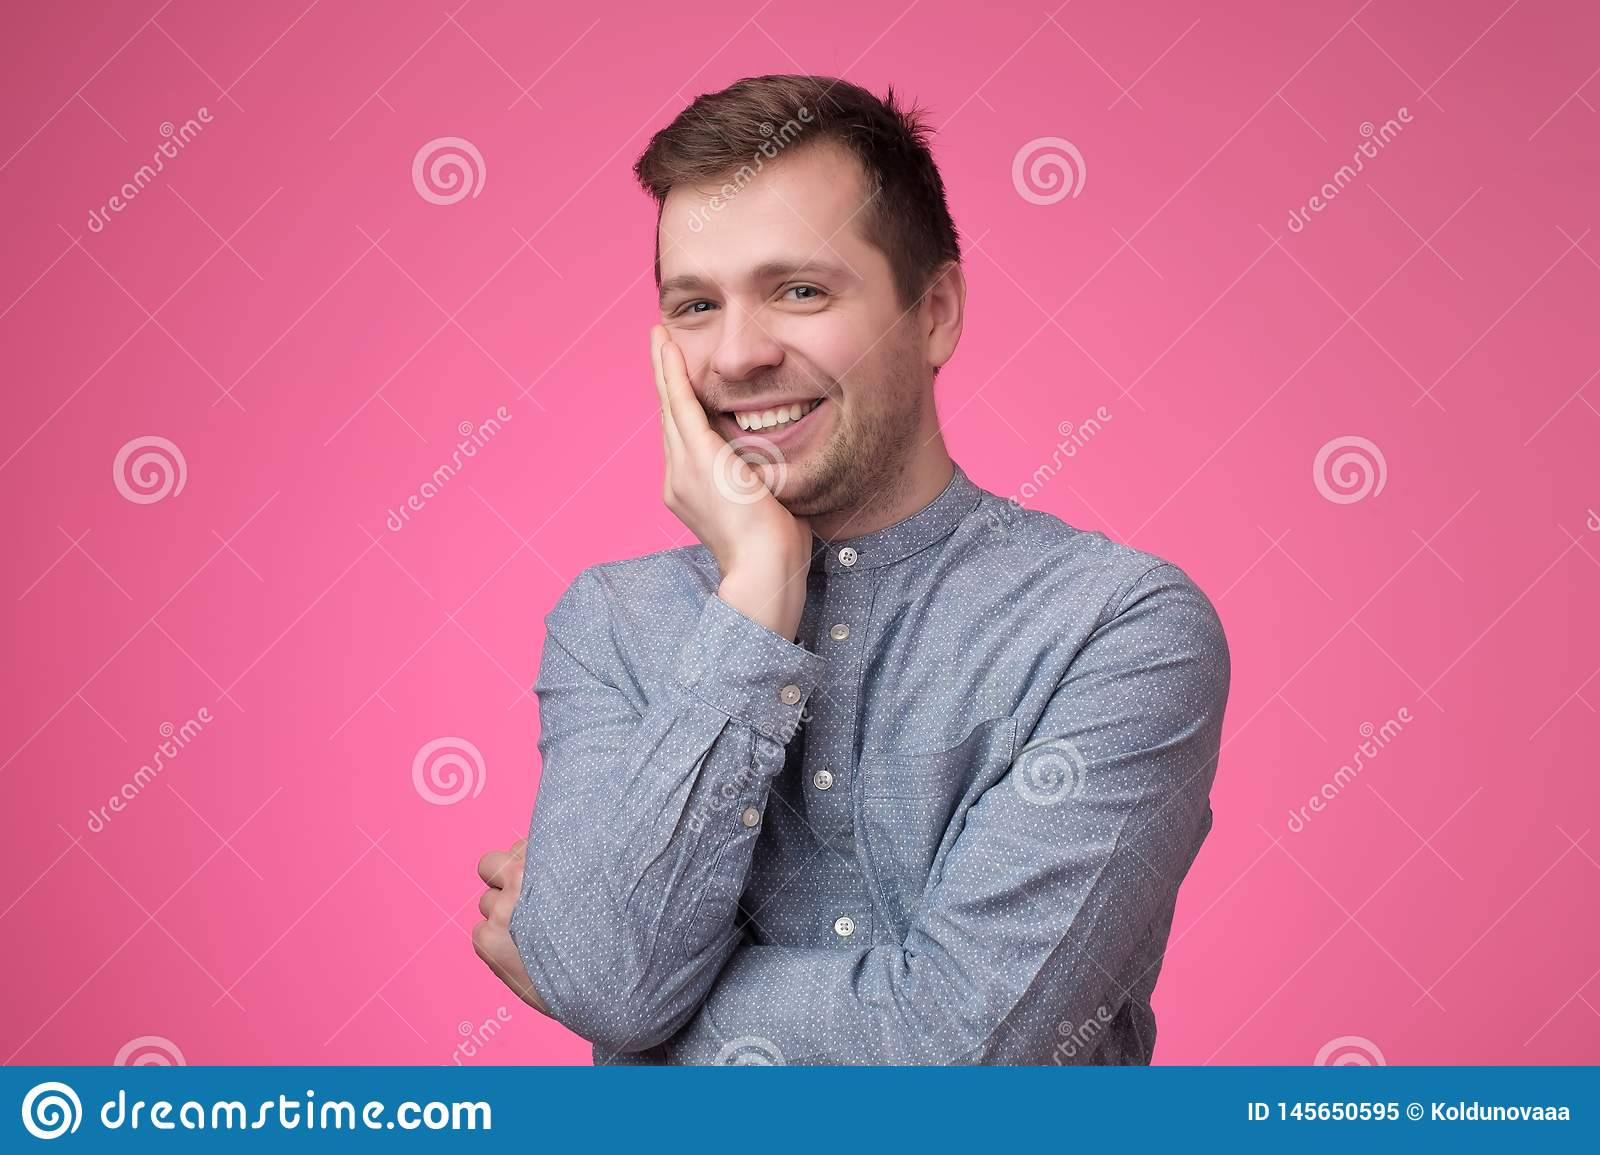 Smiling young caucasian man putting his hand to his chin